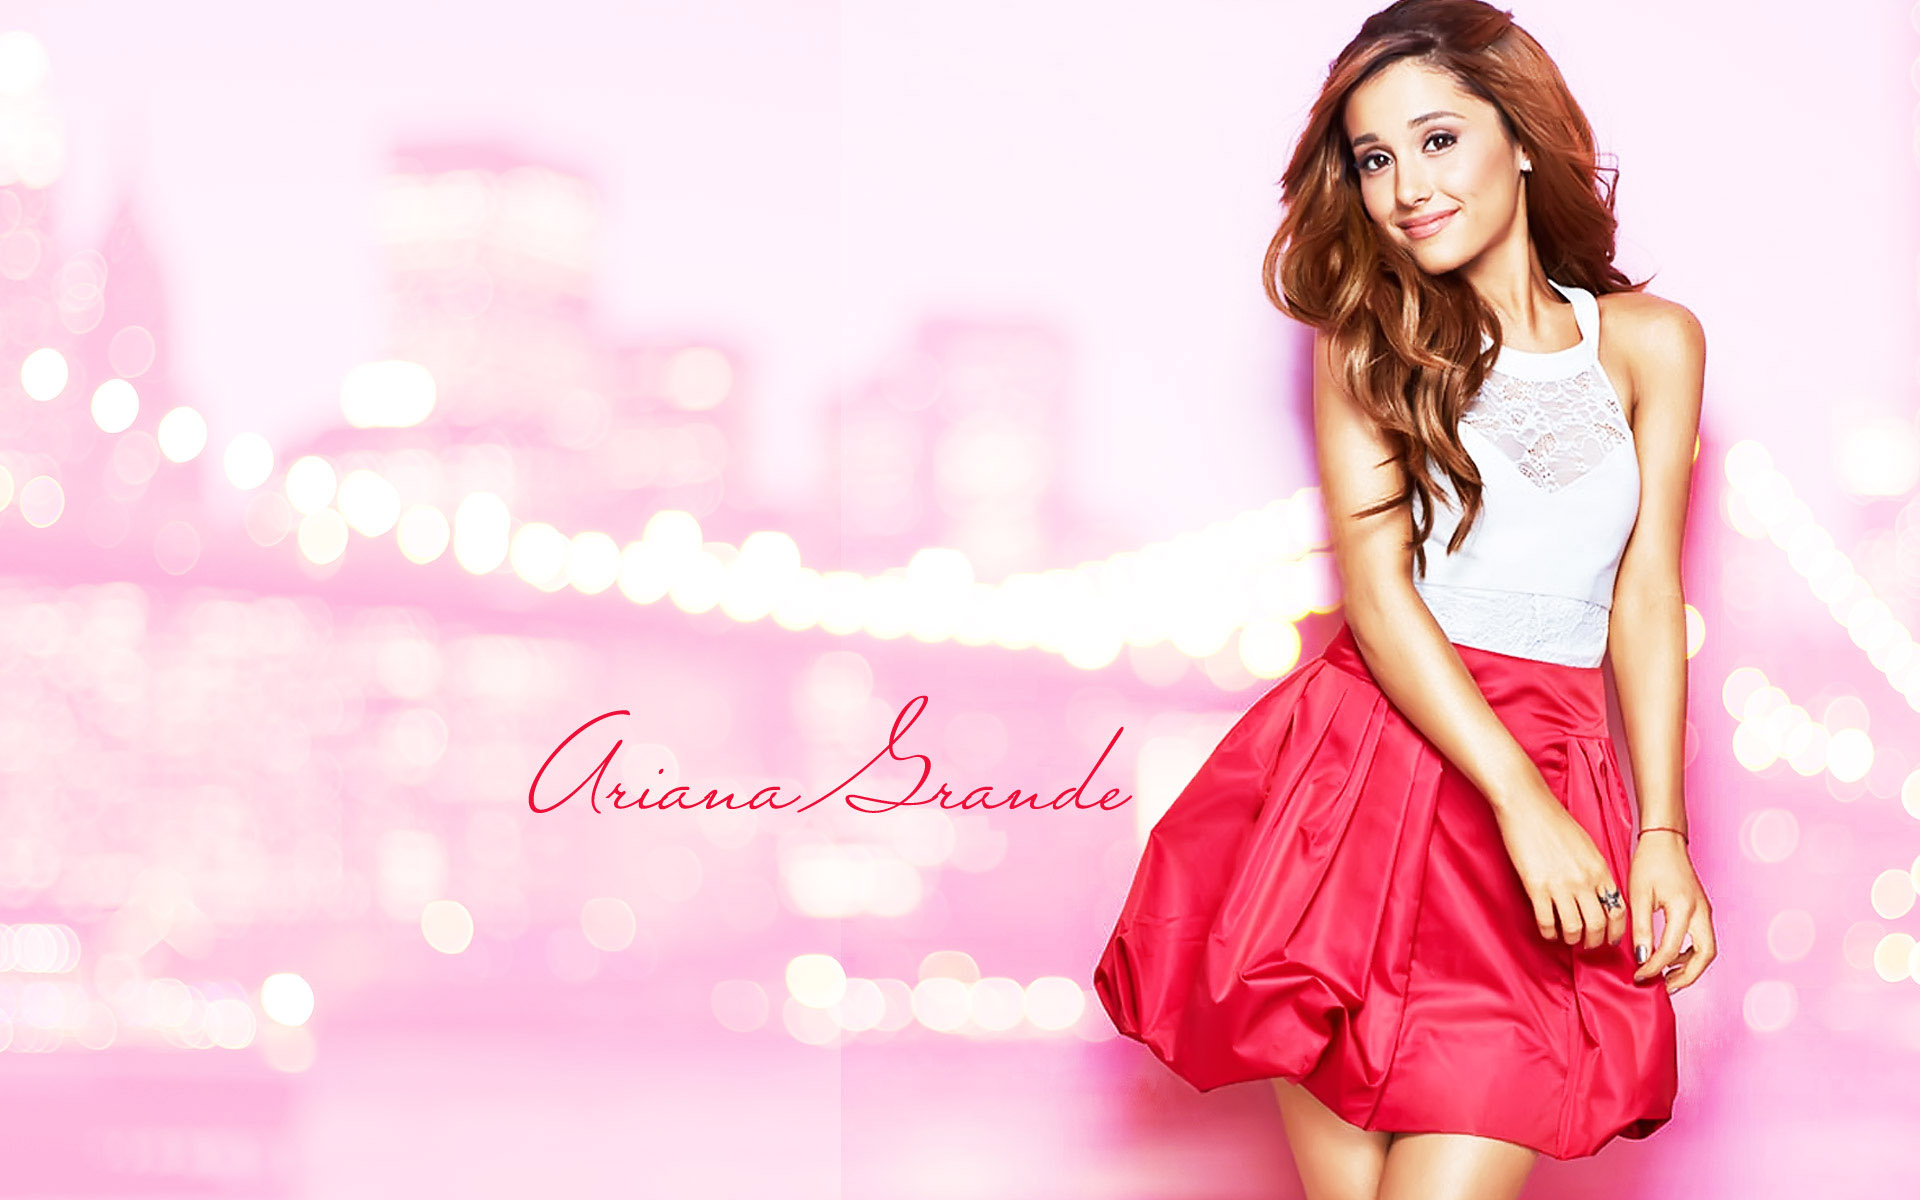 Ariana Grande HD desktop wallpapers - 250.9KB